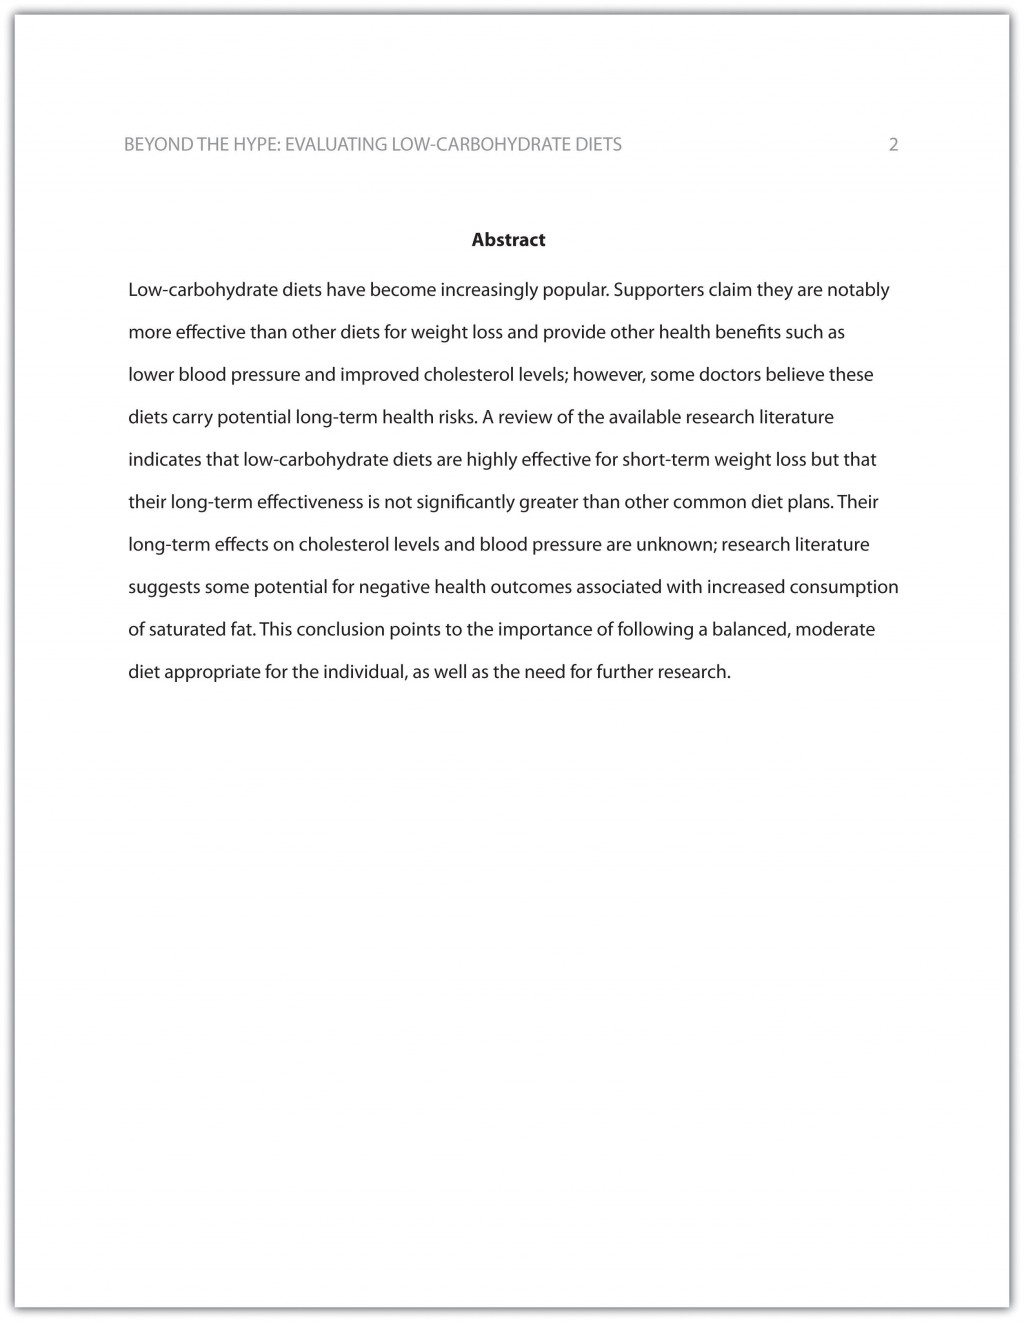 002 Abstract In Research Paper Apa Rare For Style Sample Without Large